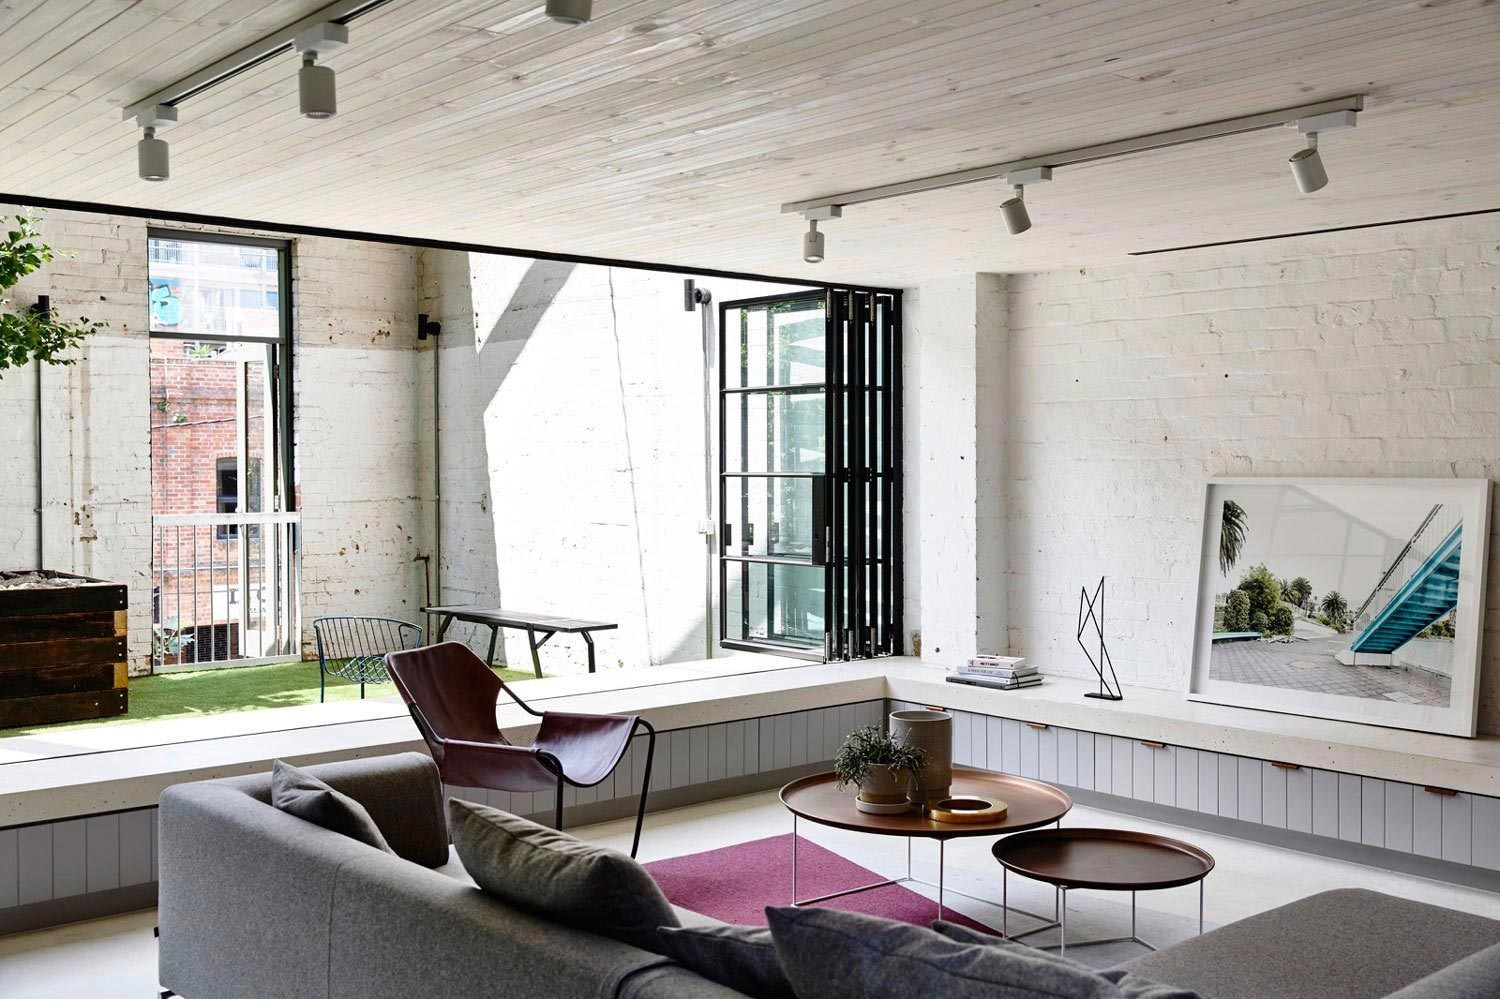 former gritty brick warehouse old industrial fitzroy gets modern renovation 04 former gritty brick warehouse old industrial fitzroy gets modern